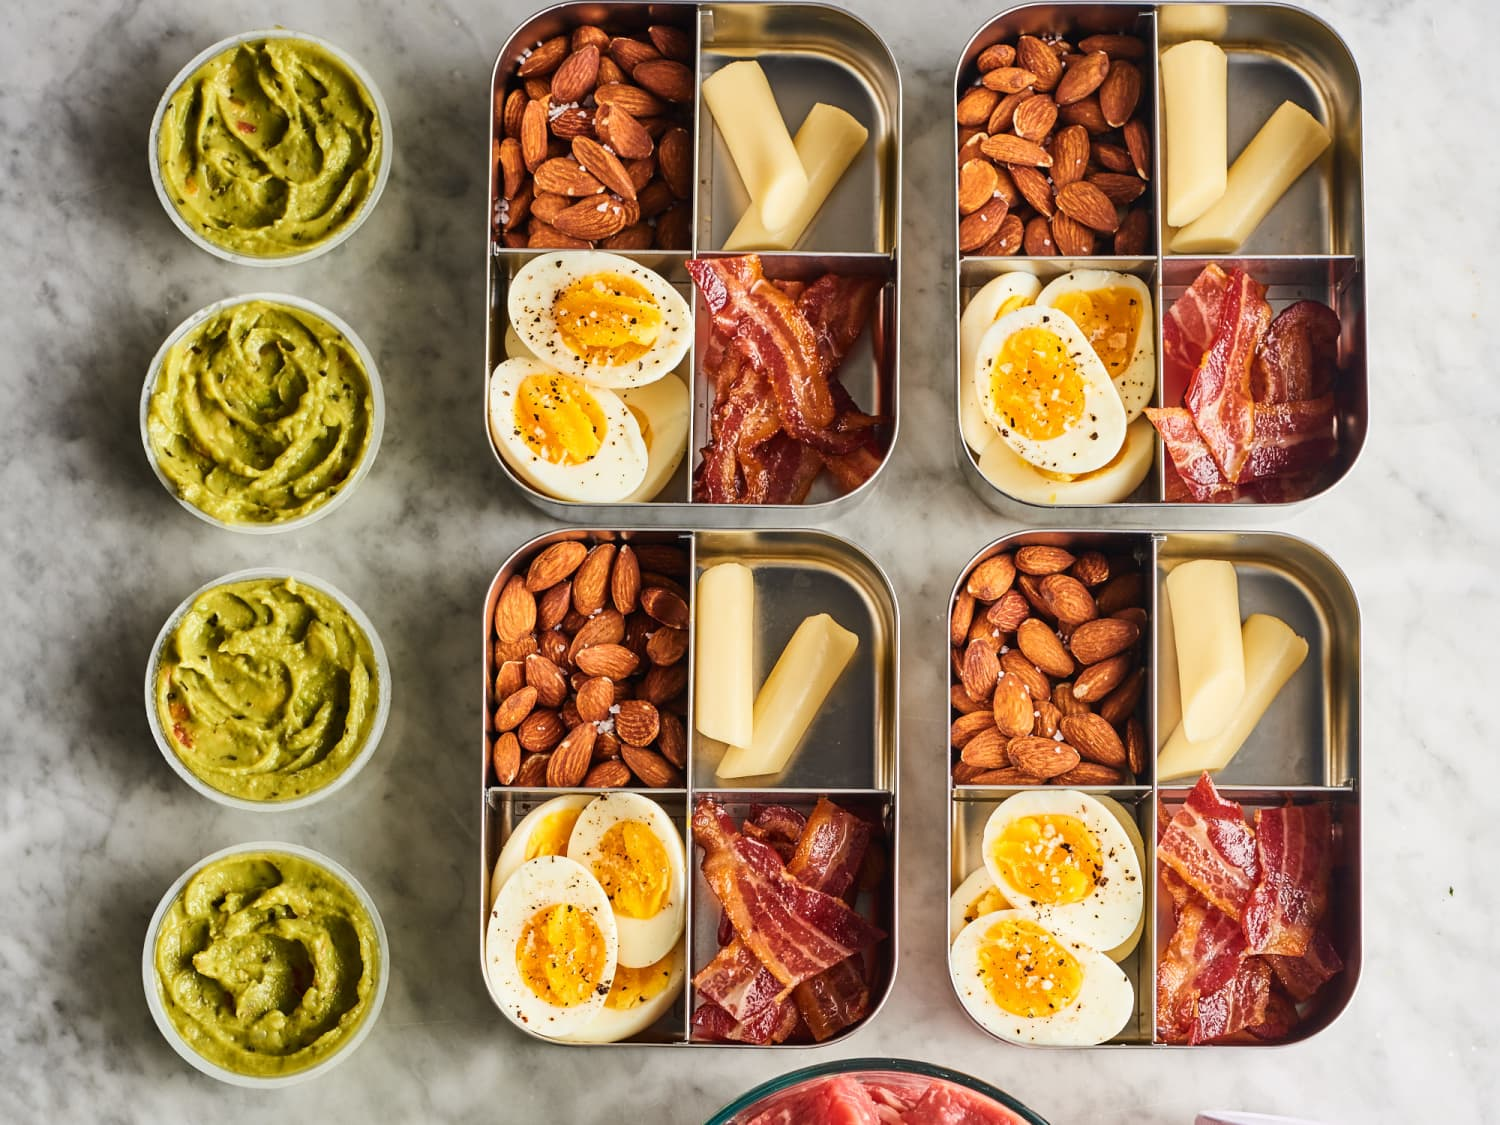 Keto Meal Prep For 1 Week Of Keto Meals In 2 Hours Kitchn